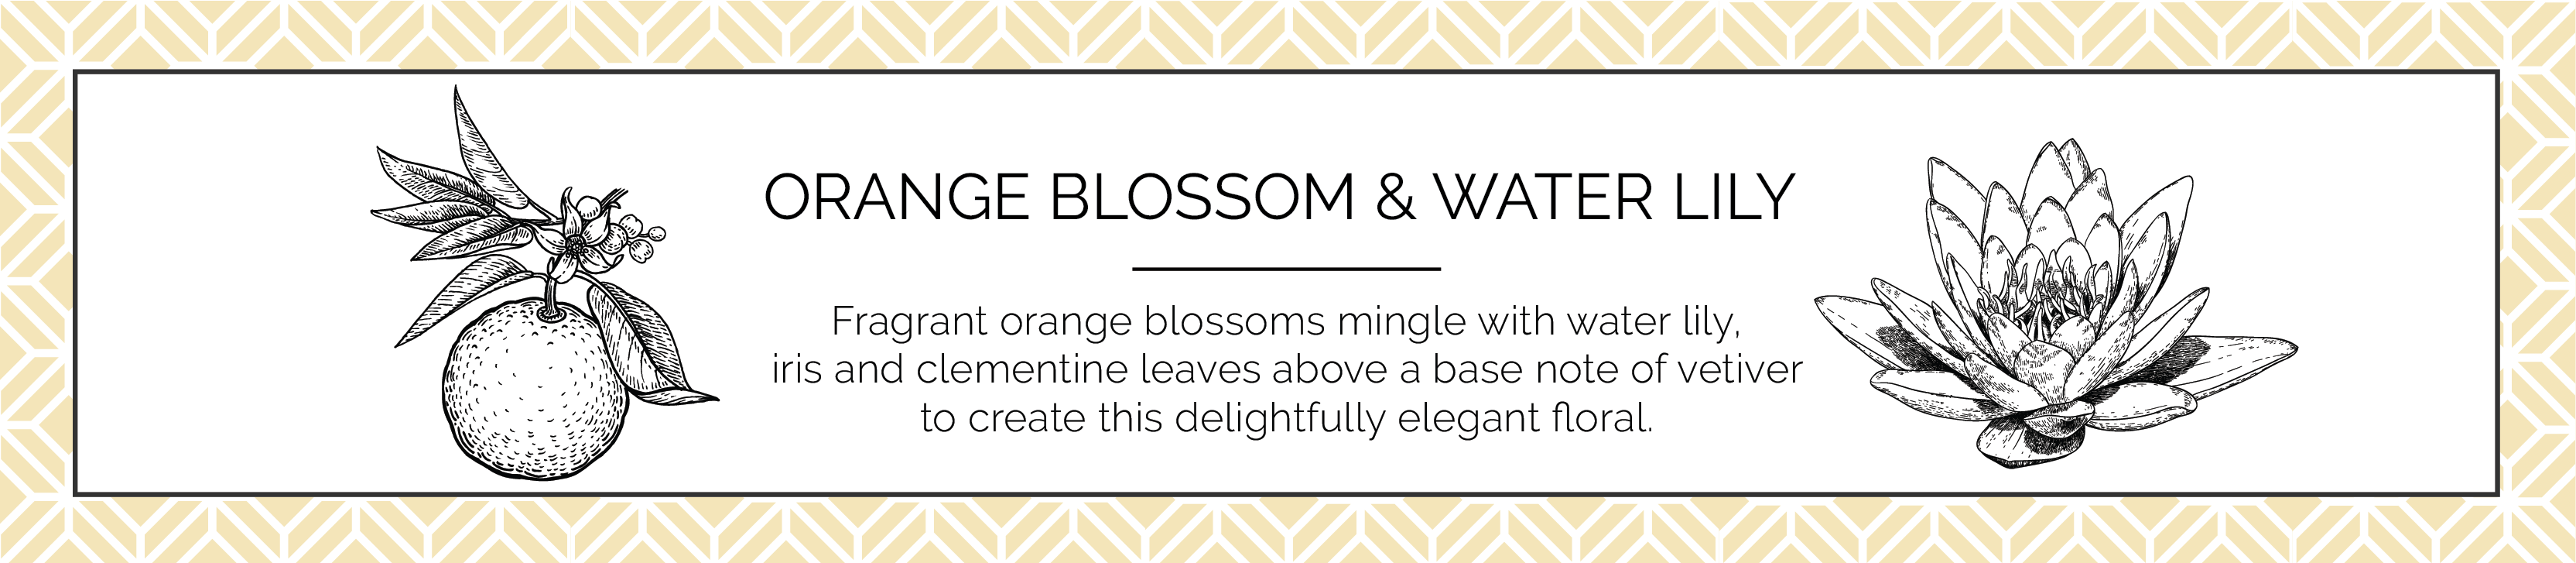 Orange Blossom and Water Lily Candle Fragrance